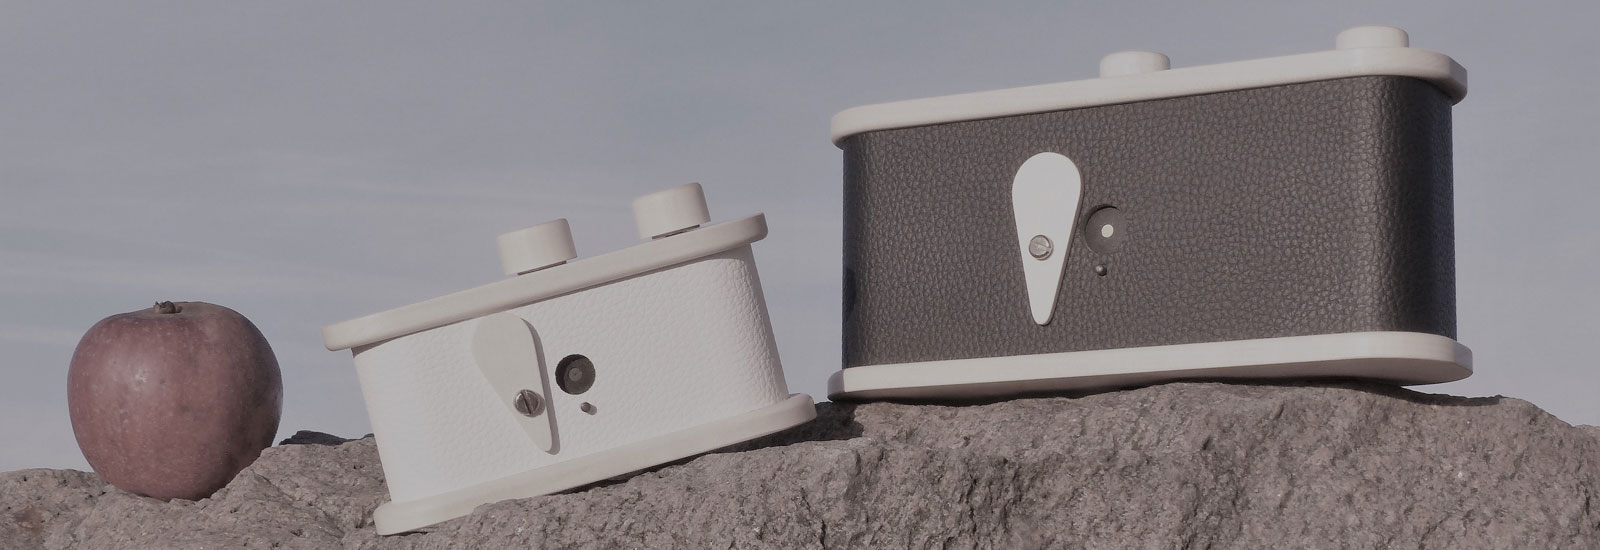 Analogue LEROUGE Pinhole Cameras – the Magic Of Pure Photography!